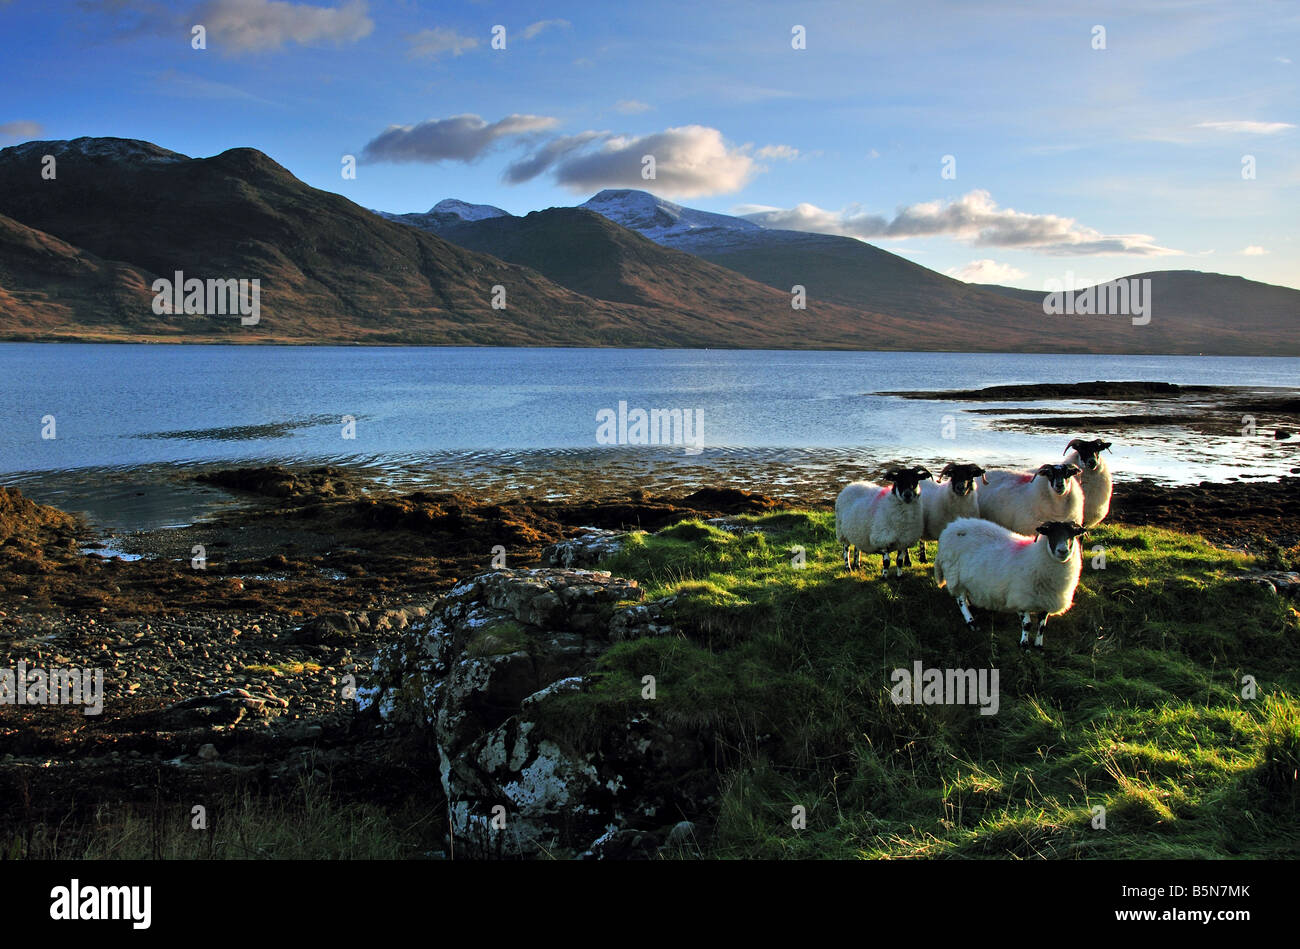 Black faced sheep on the shore of Lach na Keal, Isle of Mull, Scotland - Stock Image